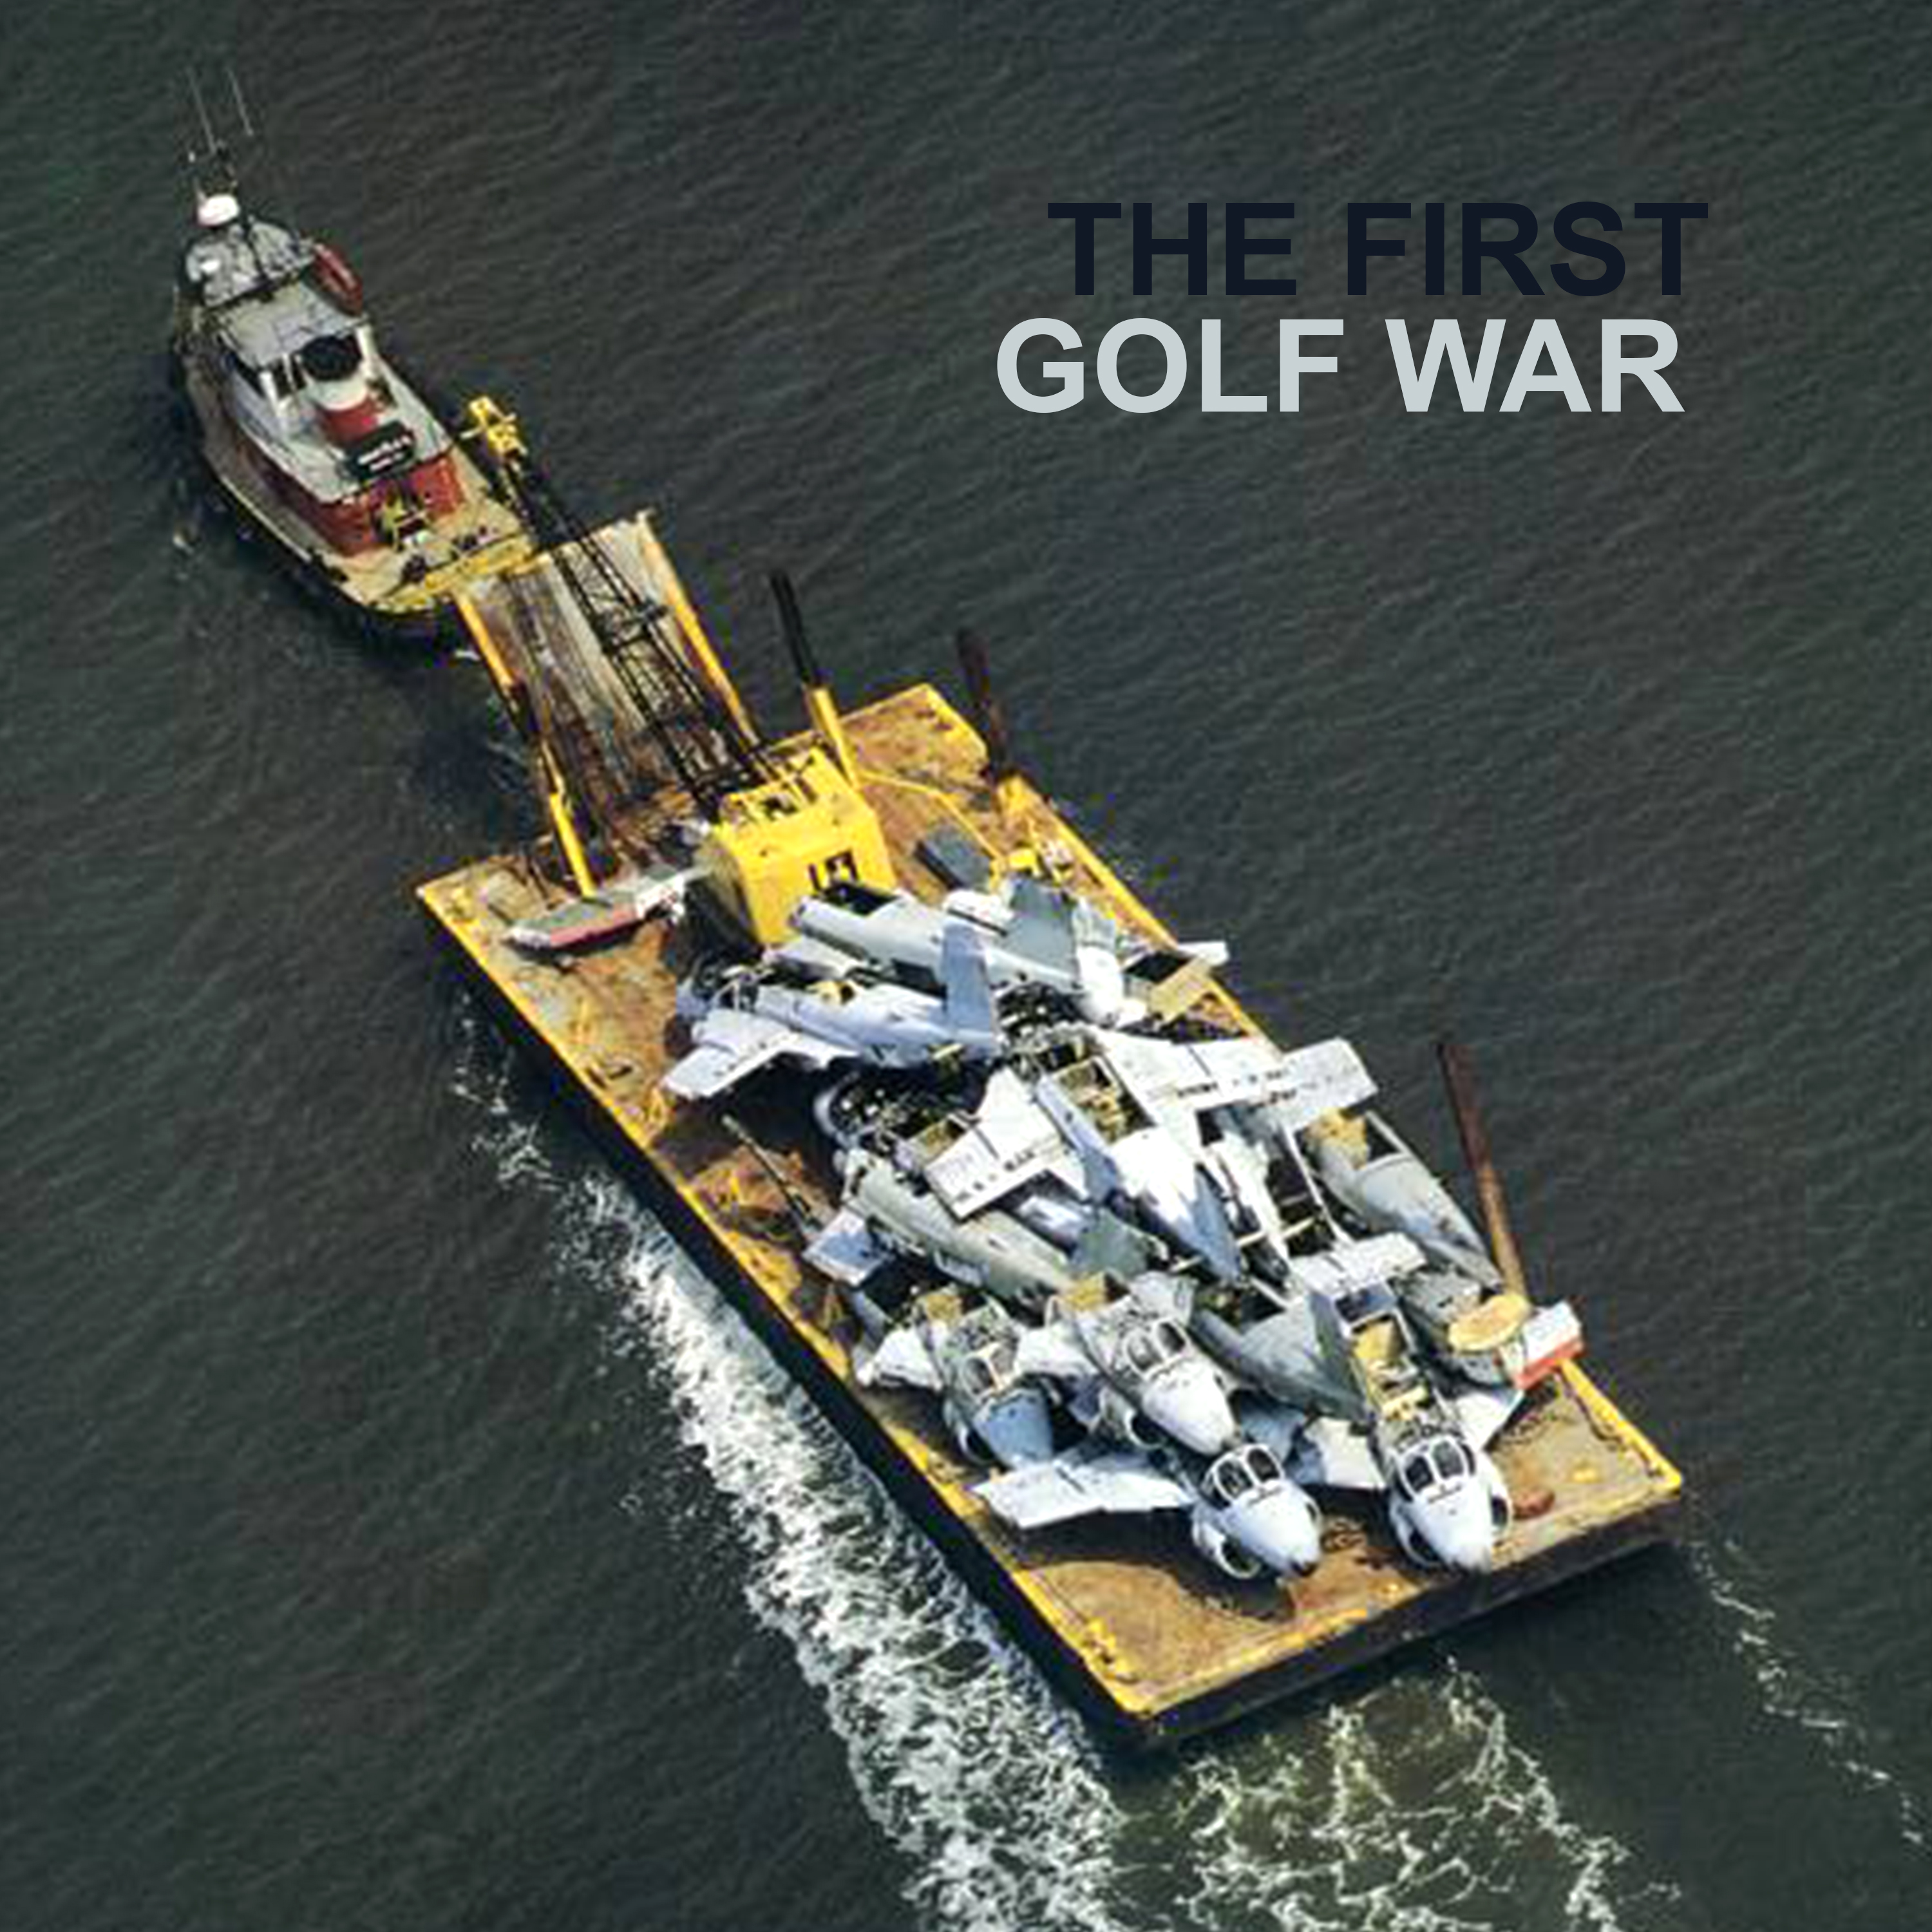 The First Golf War - Pt. 1